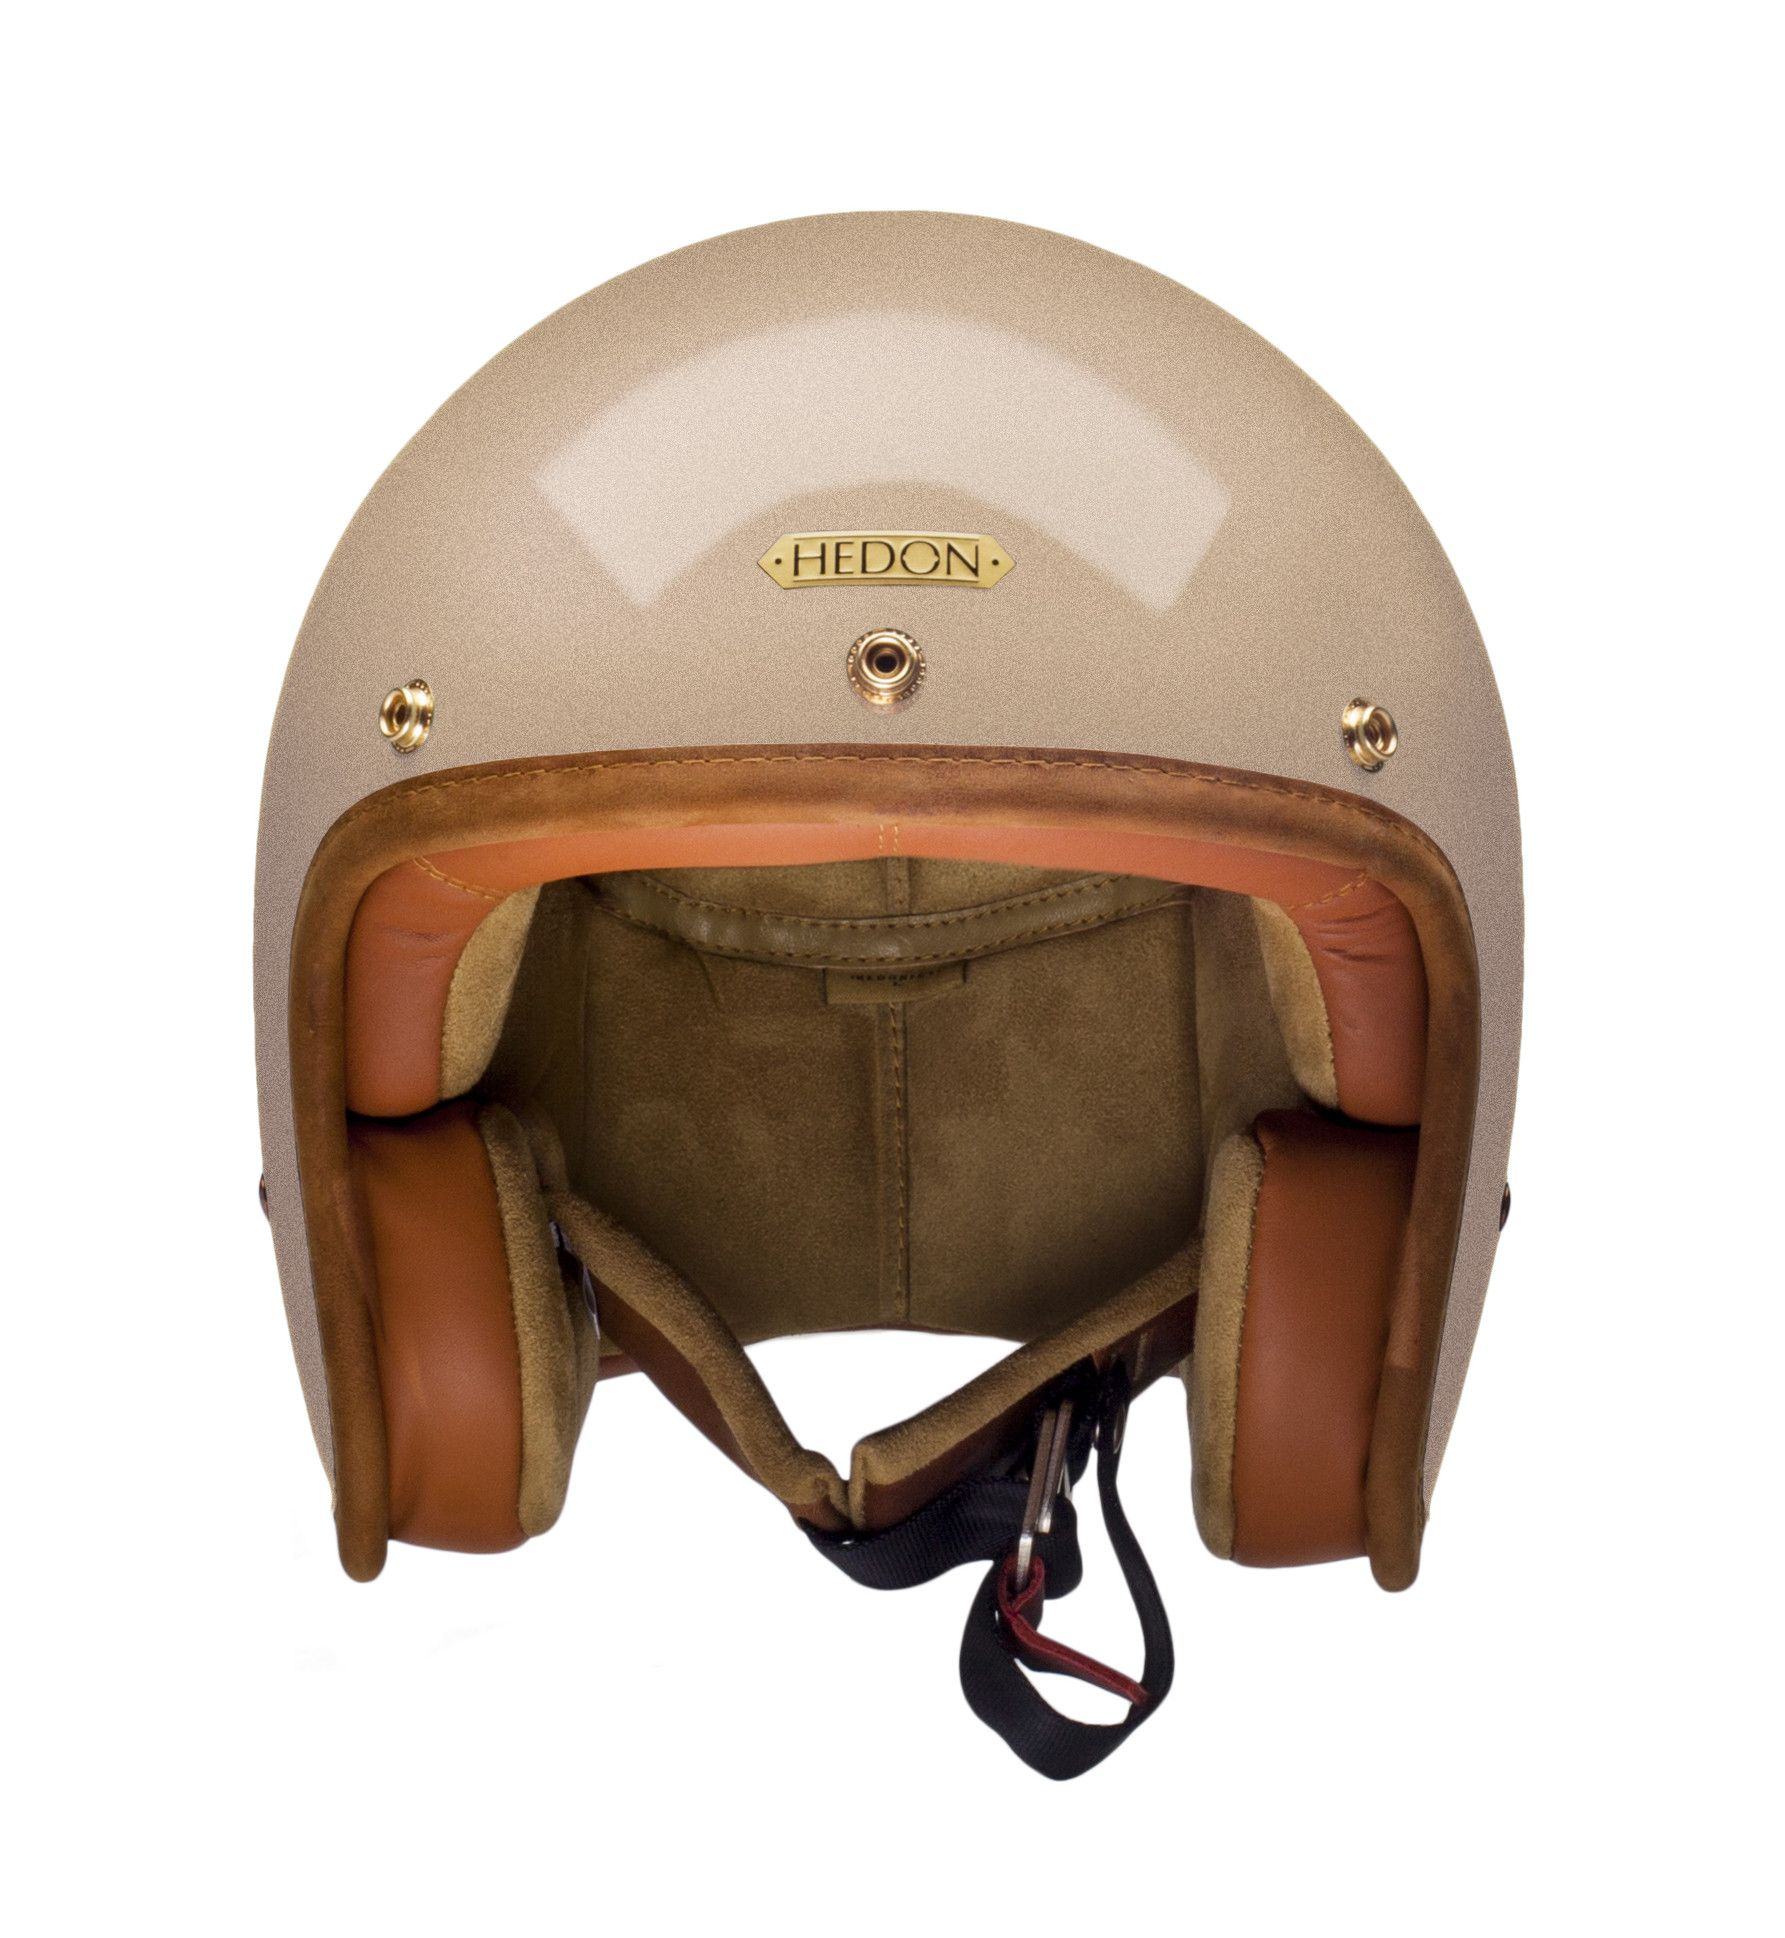 Hedon Hedonist Helmet Champagne Revival Cycles